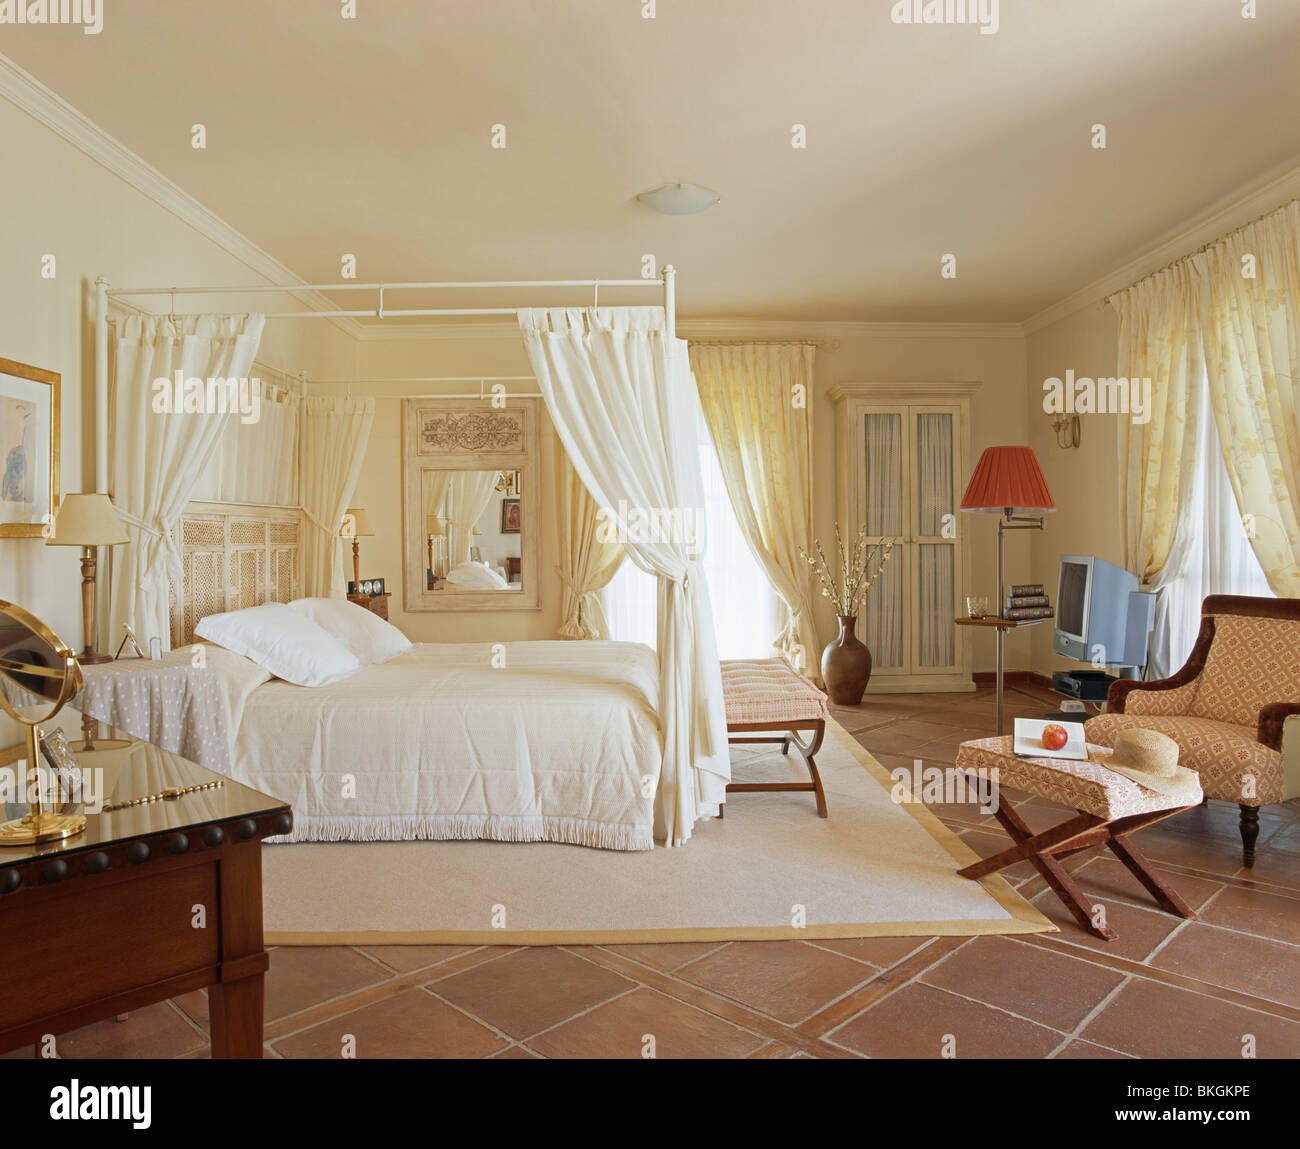 Modern Four Poster Bed With Cream Drapes And Bedlinen In Traditional Stock Photo 29255590 Alamy